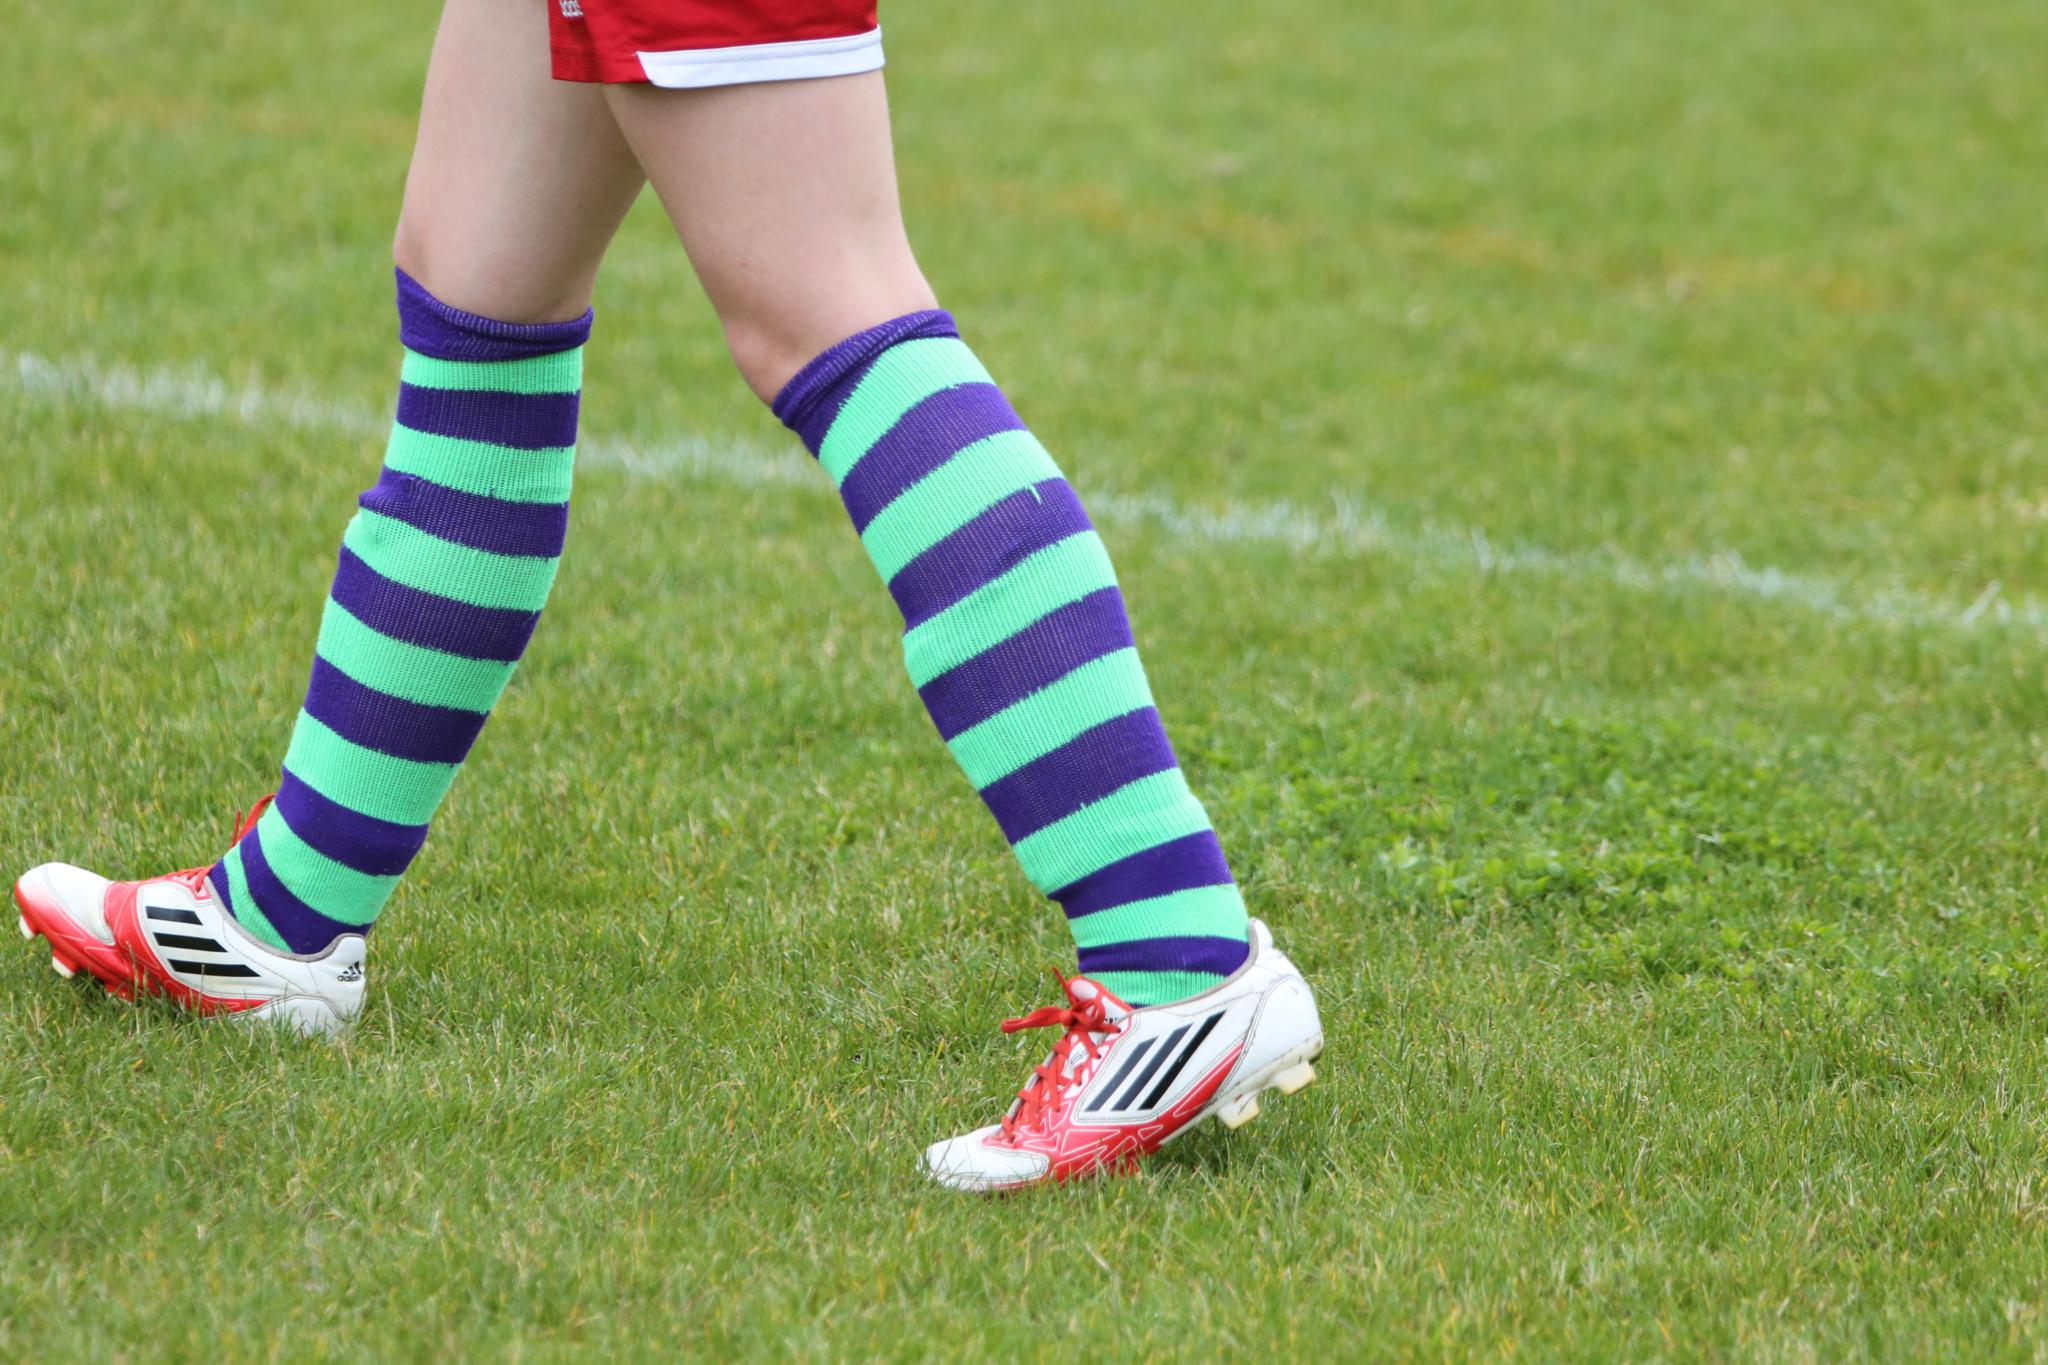 Pair girls' soccer socks with girls' soccer cleats and shirts so she's outfitted from head-to-toe. Shop soccer socks for men, women and boys, and be sure to explore the full collection of girls' soccer clothing for additional apparel items.